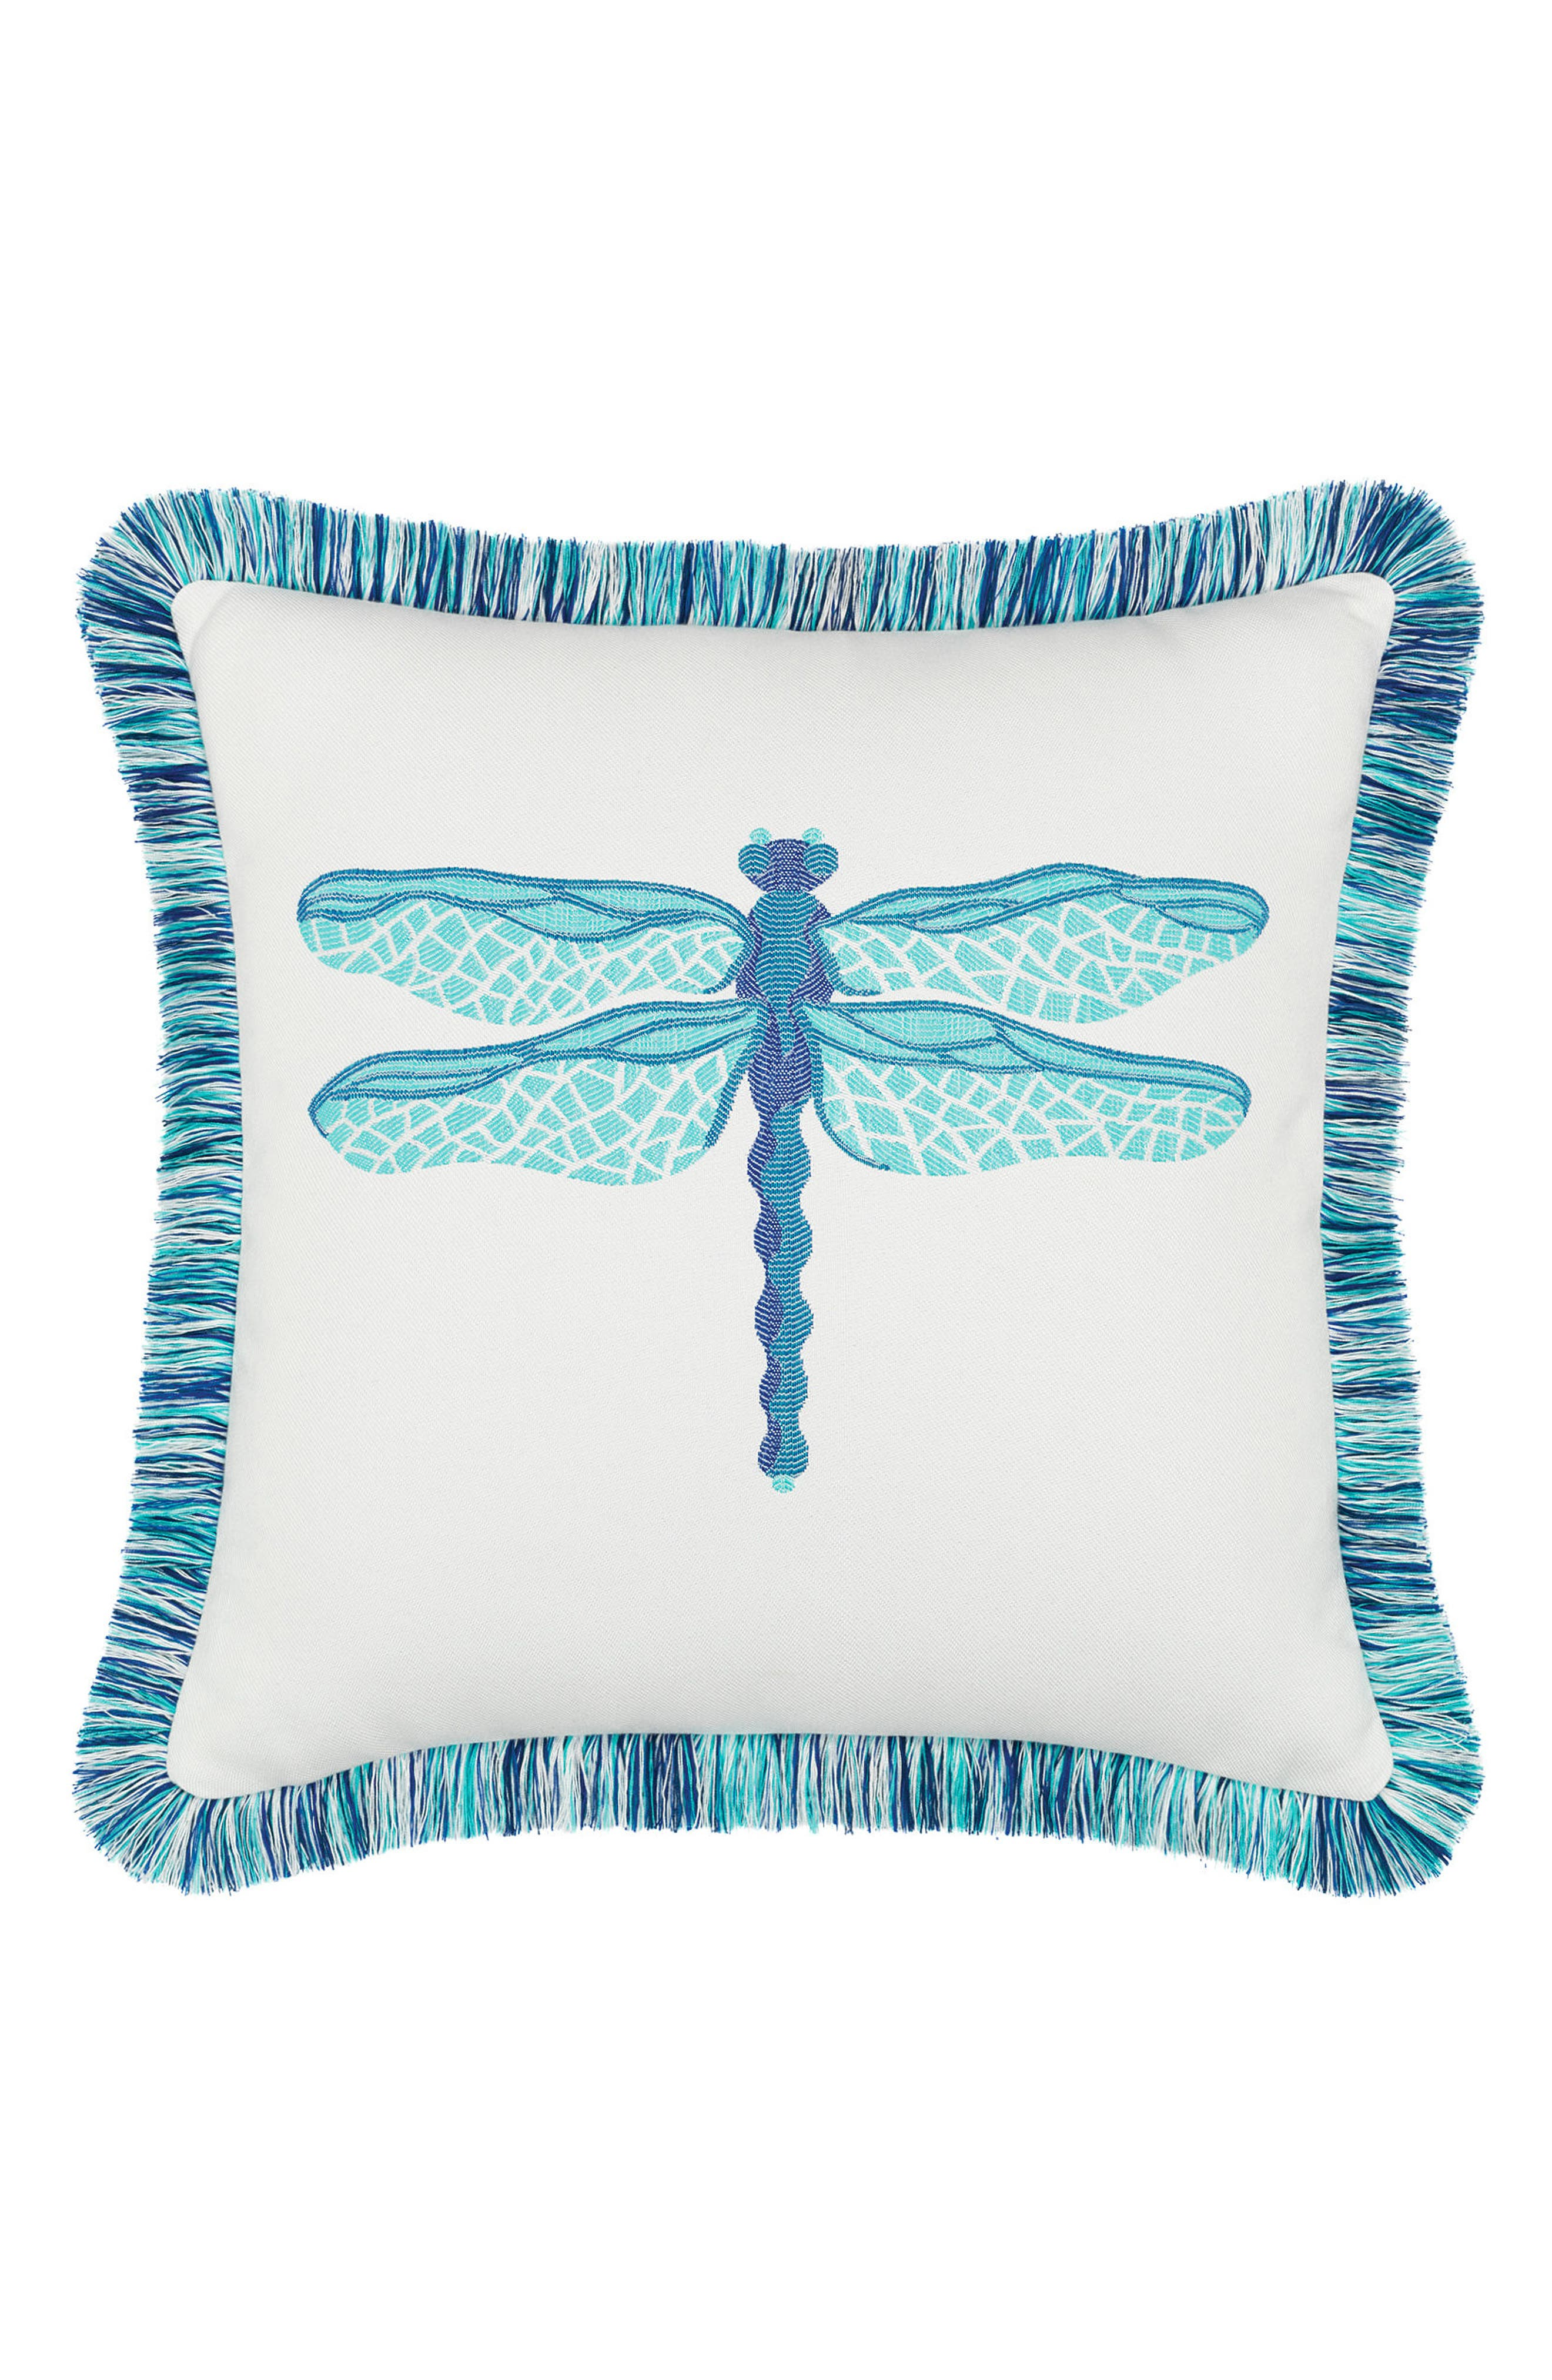 Dragonfly Indoor/Outdoor Accent Pillow,                         Main,                         color, Blue/ White